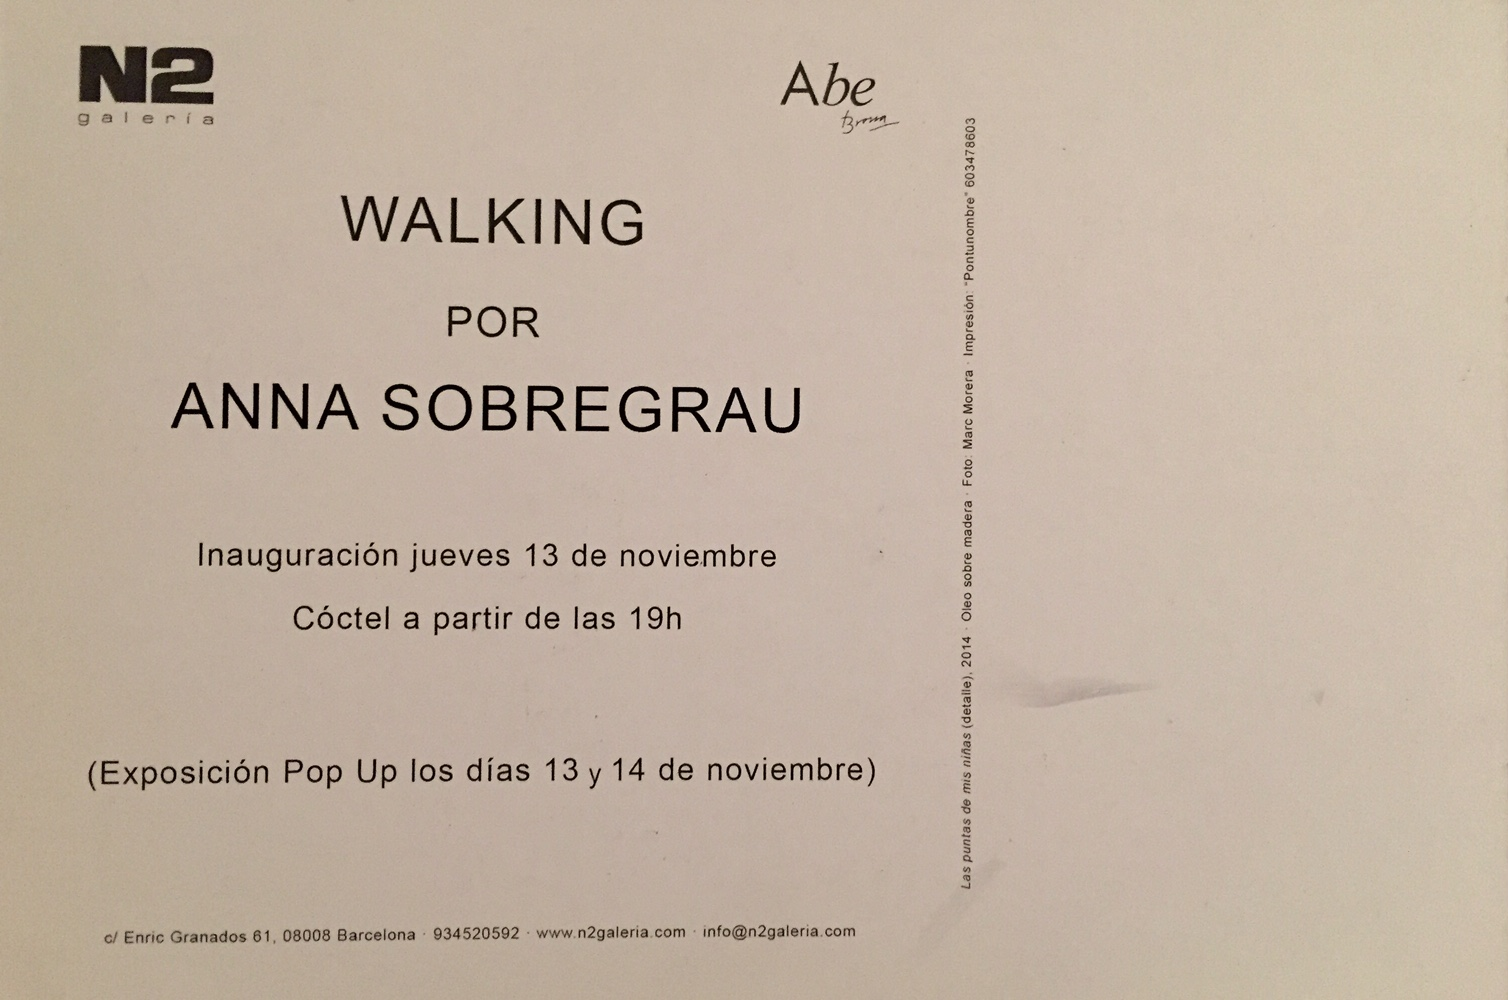 Walking invitacion